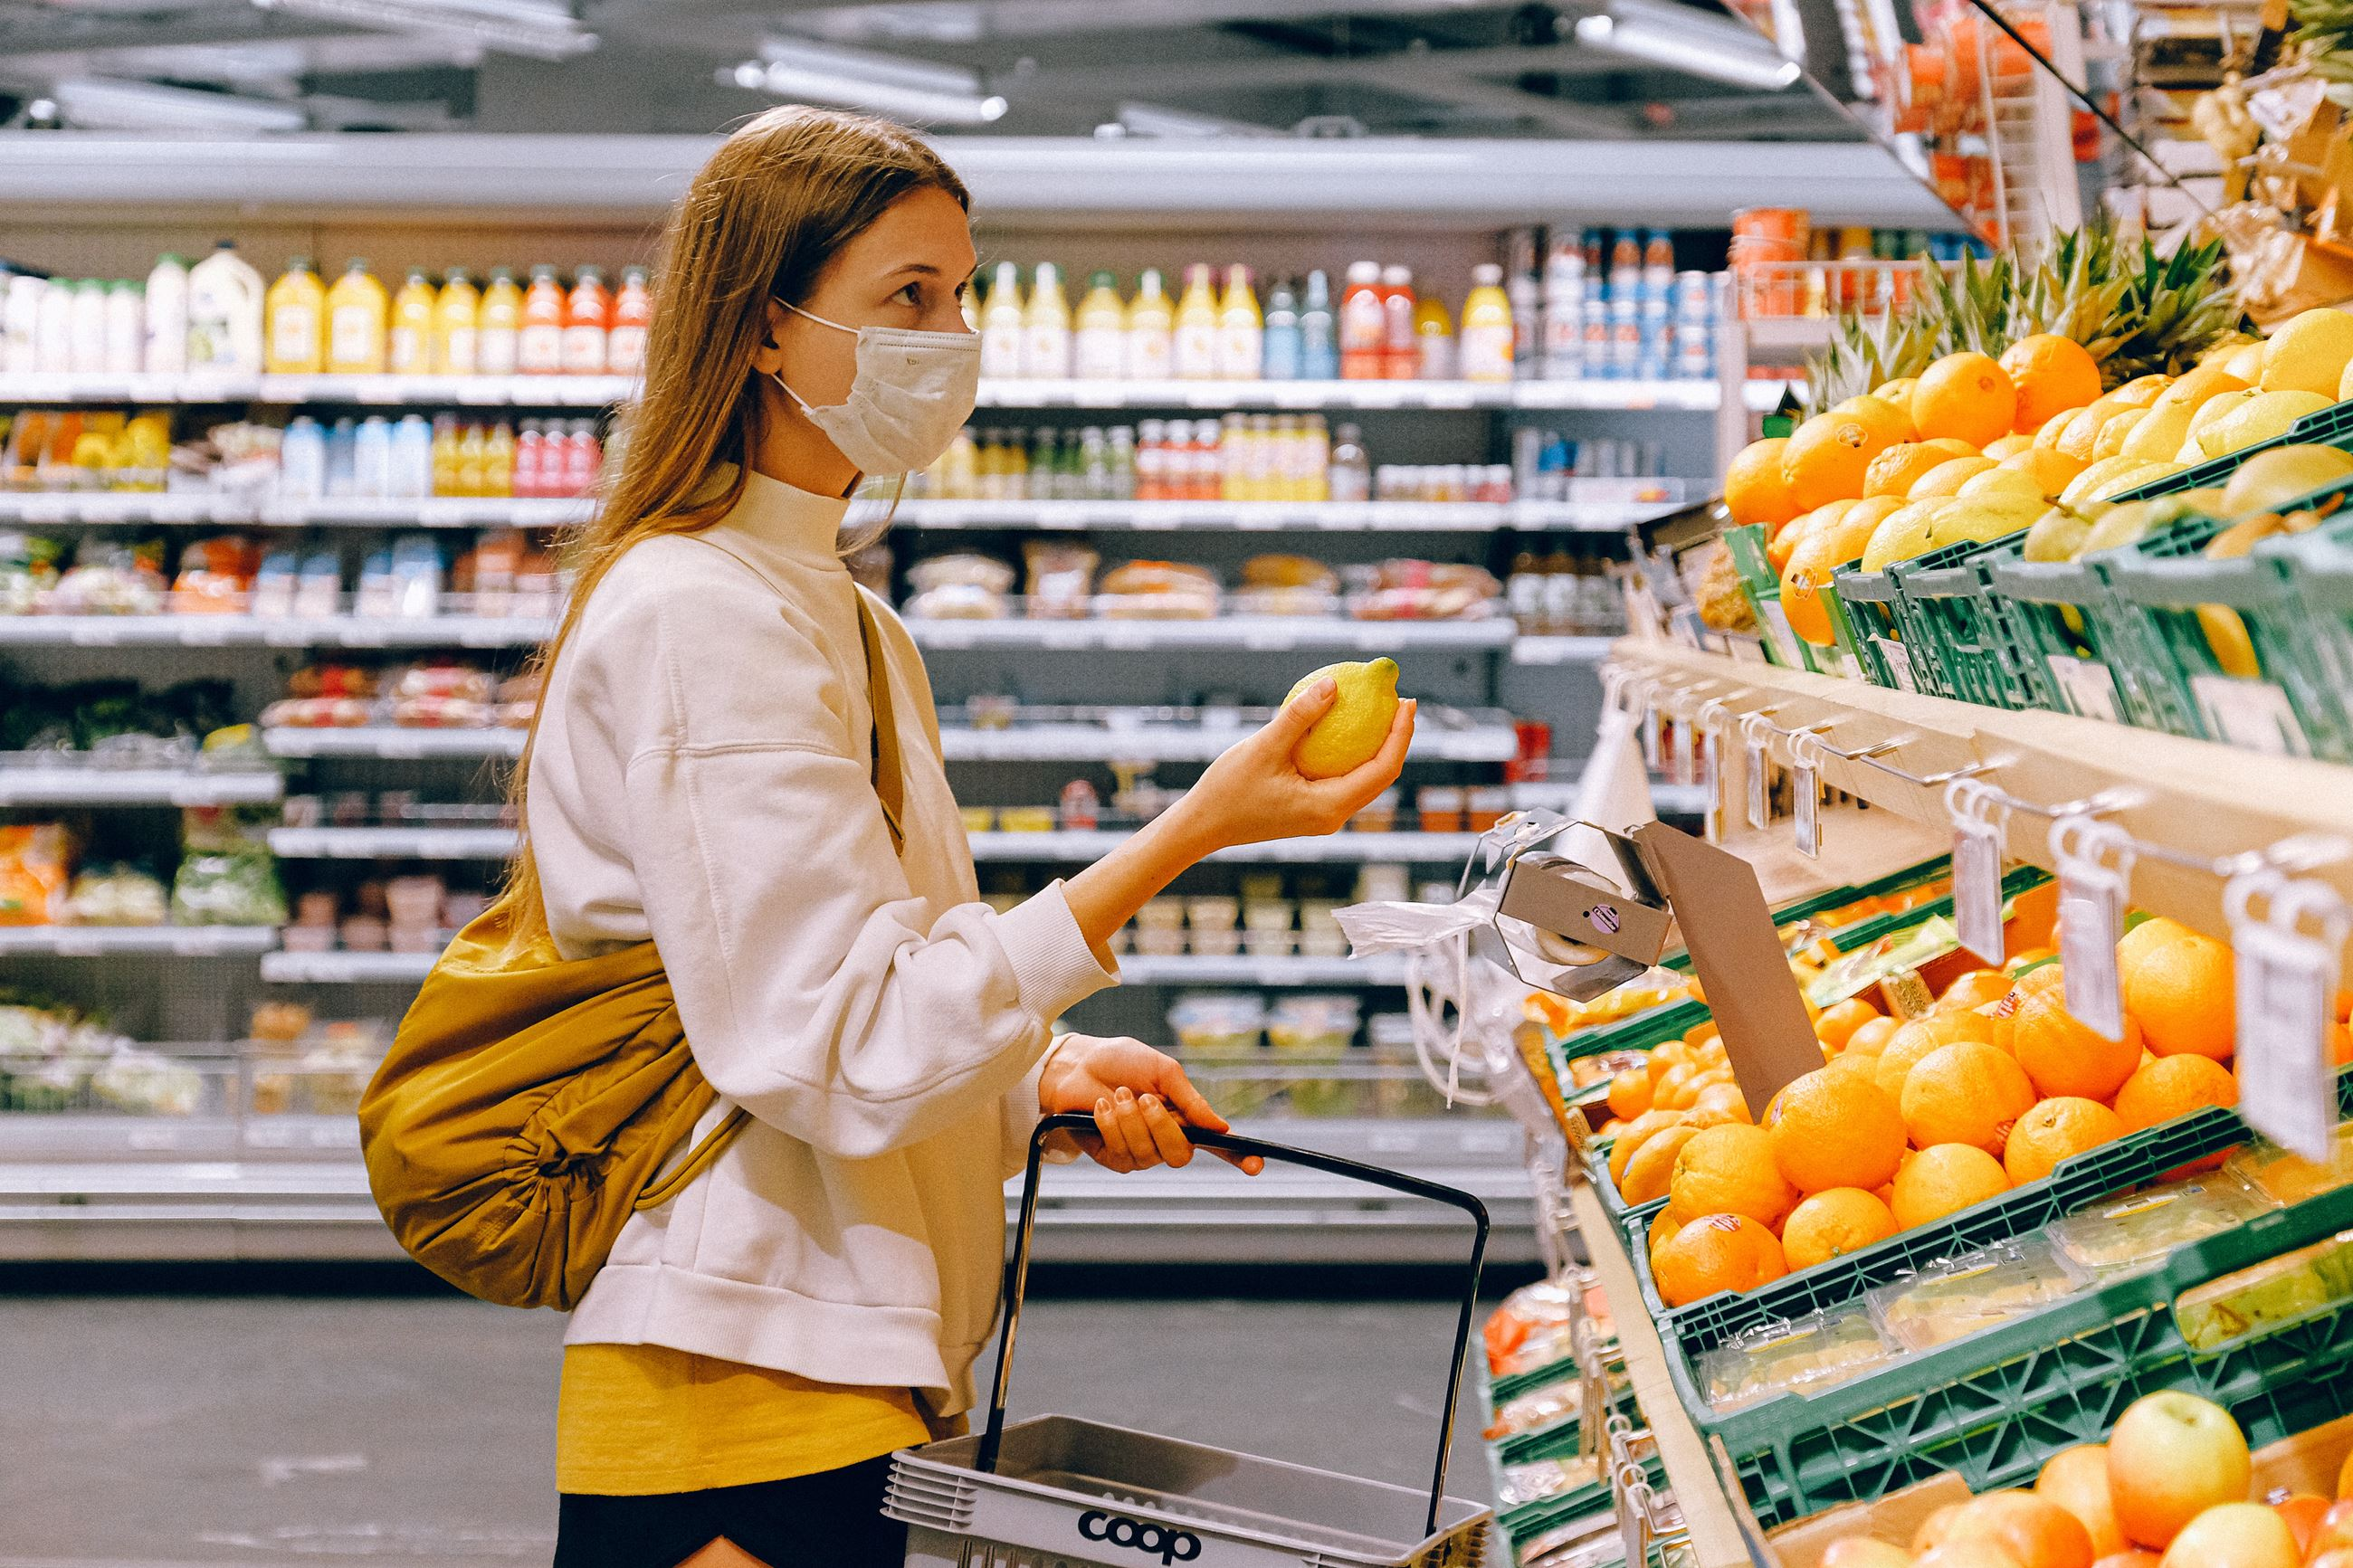 woman-in-yellow-tshirt-and-beige-jacket-holding-a-fruit-3962285